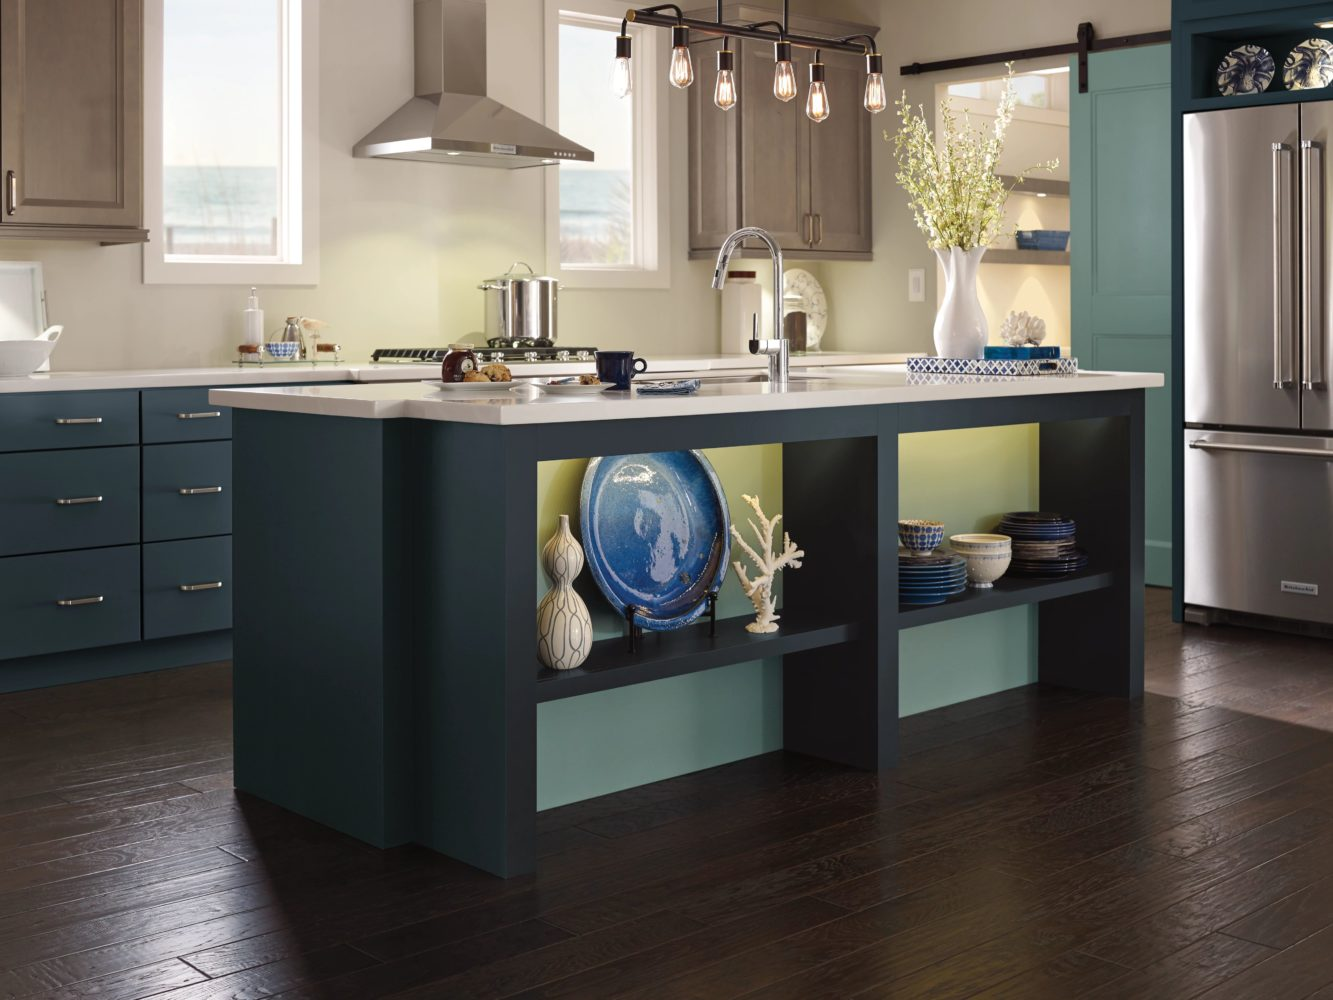 Blue Kitchen Cabinets by Diamond Cabinets in Maritime and Oasis Finishes